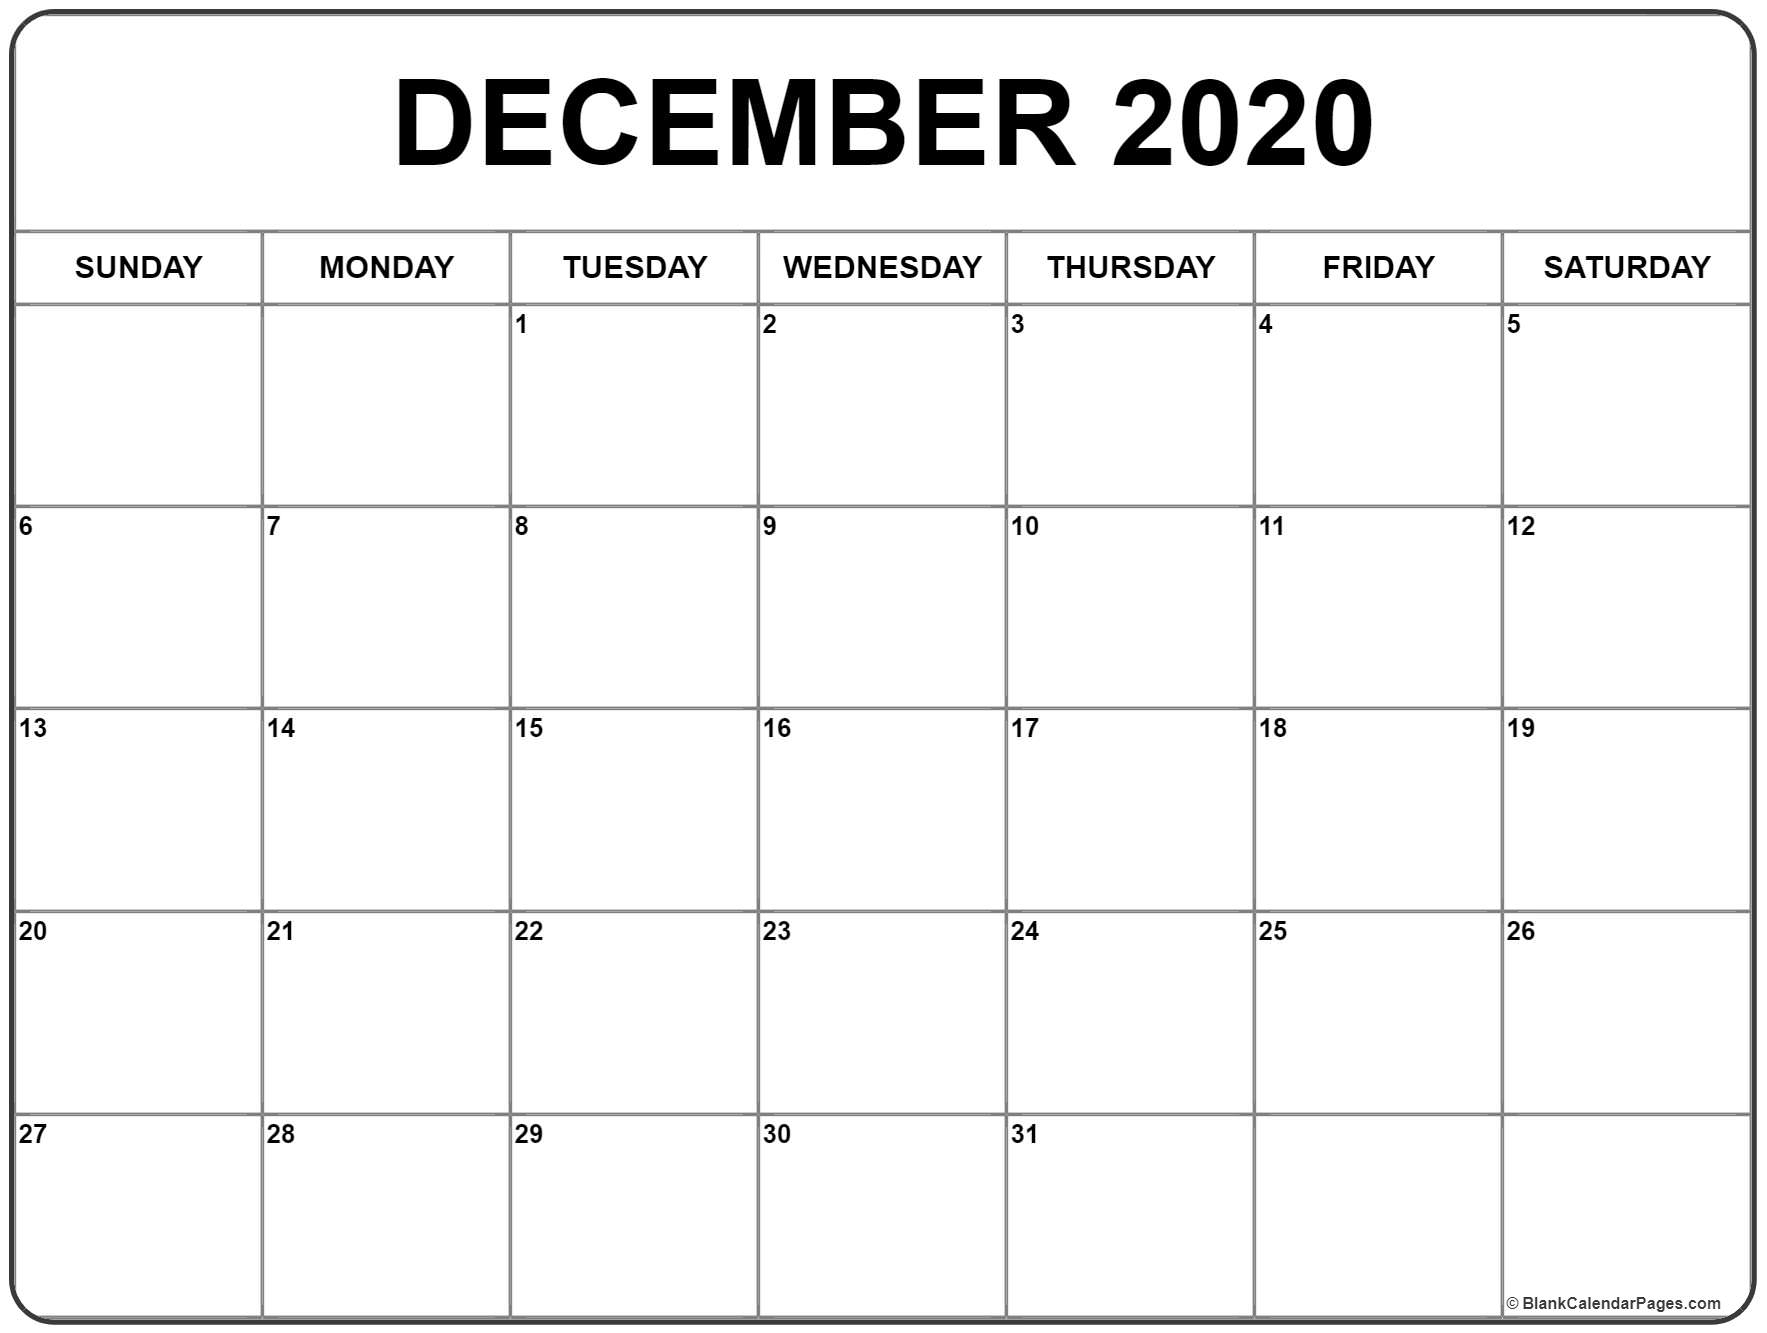 January Thru December 2020 Printable Monthly Calendar